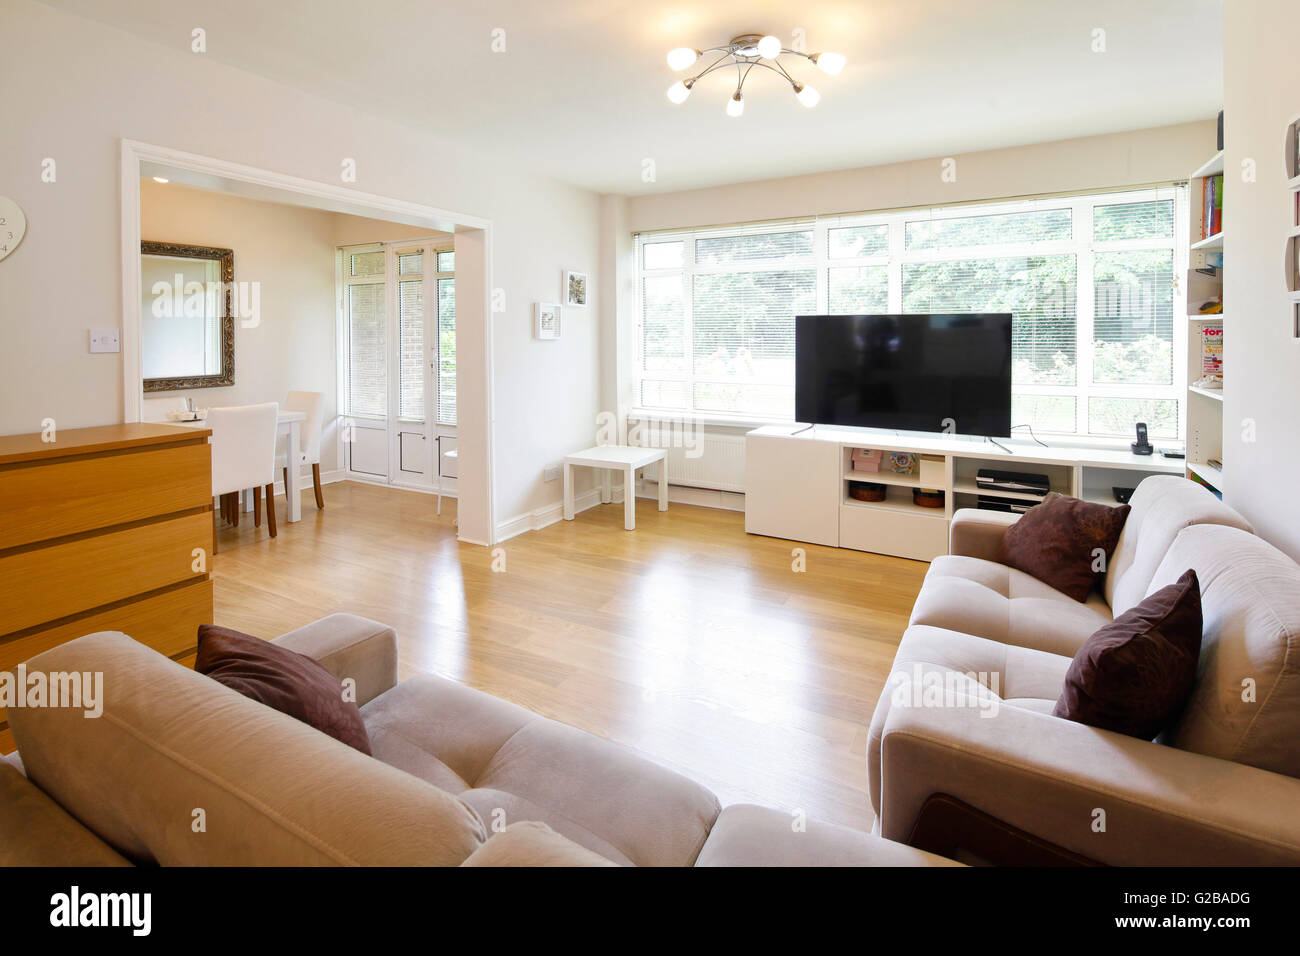 Large Screen Tv Uk Living Room High Resolution Stock Photography And Images Alamy